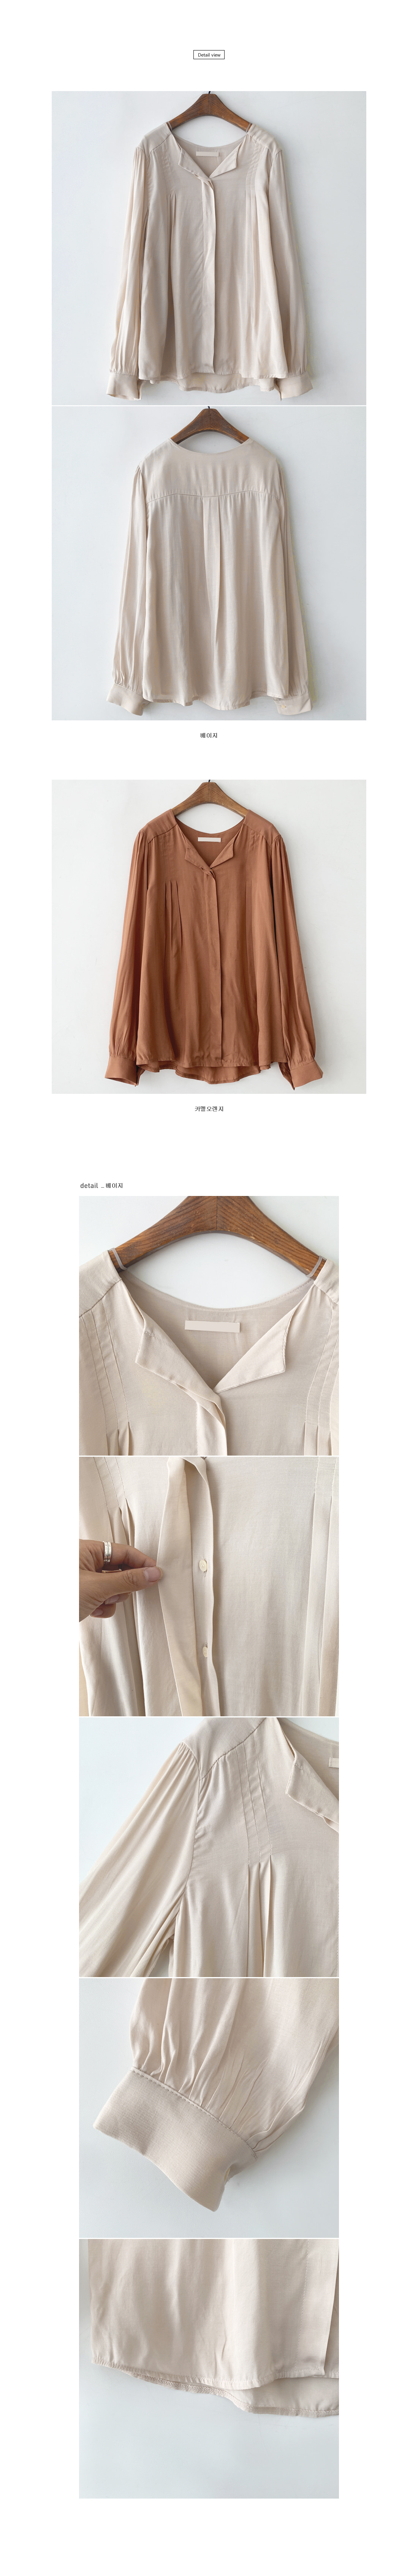 Heaty Satin Blouse